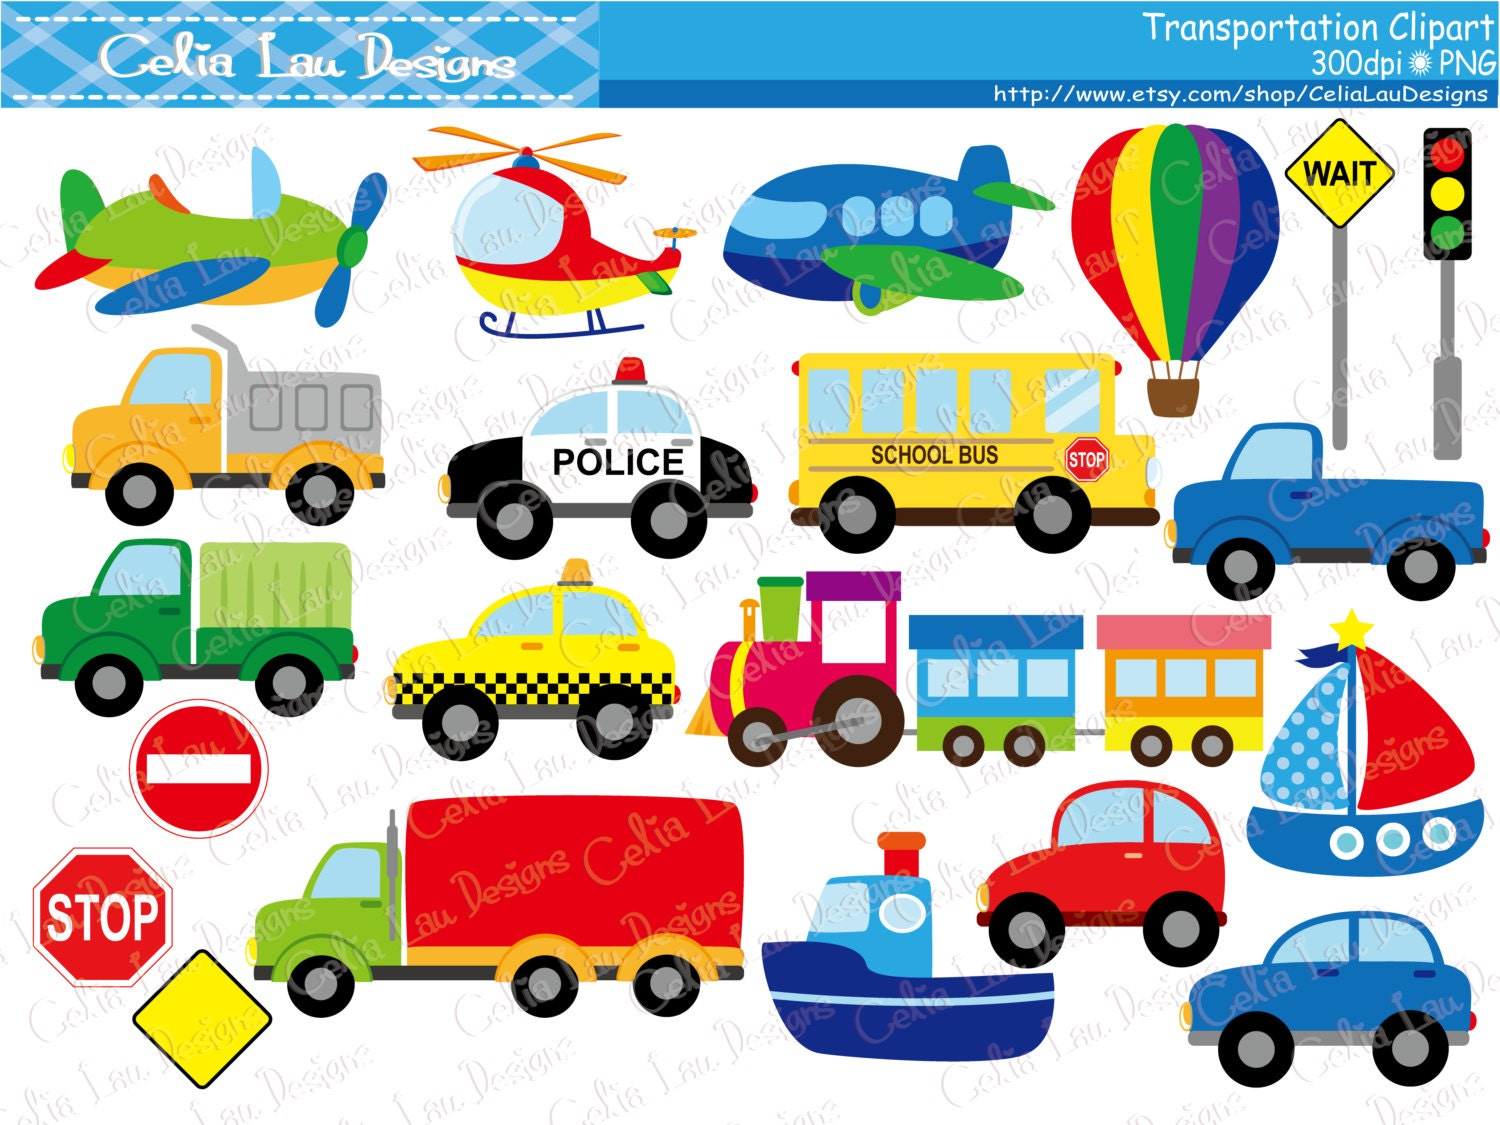 transportation clipart car taxi school bus police car truck rh etsystudio com transportation clipart preschool transportation clipart preschool